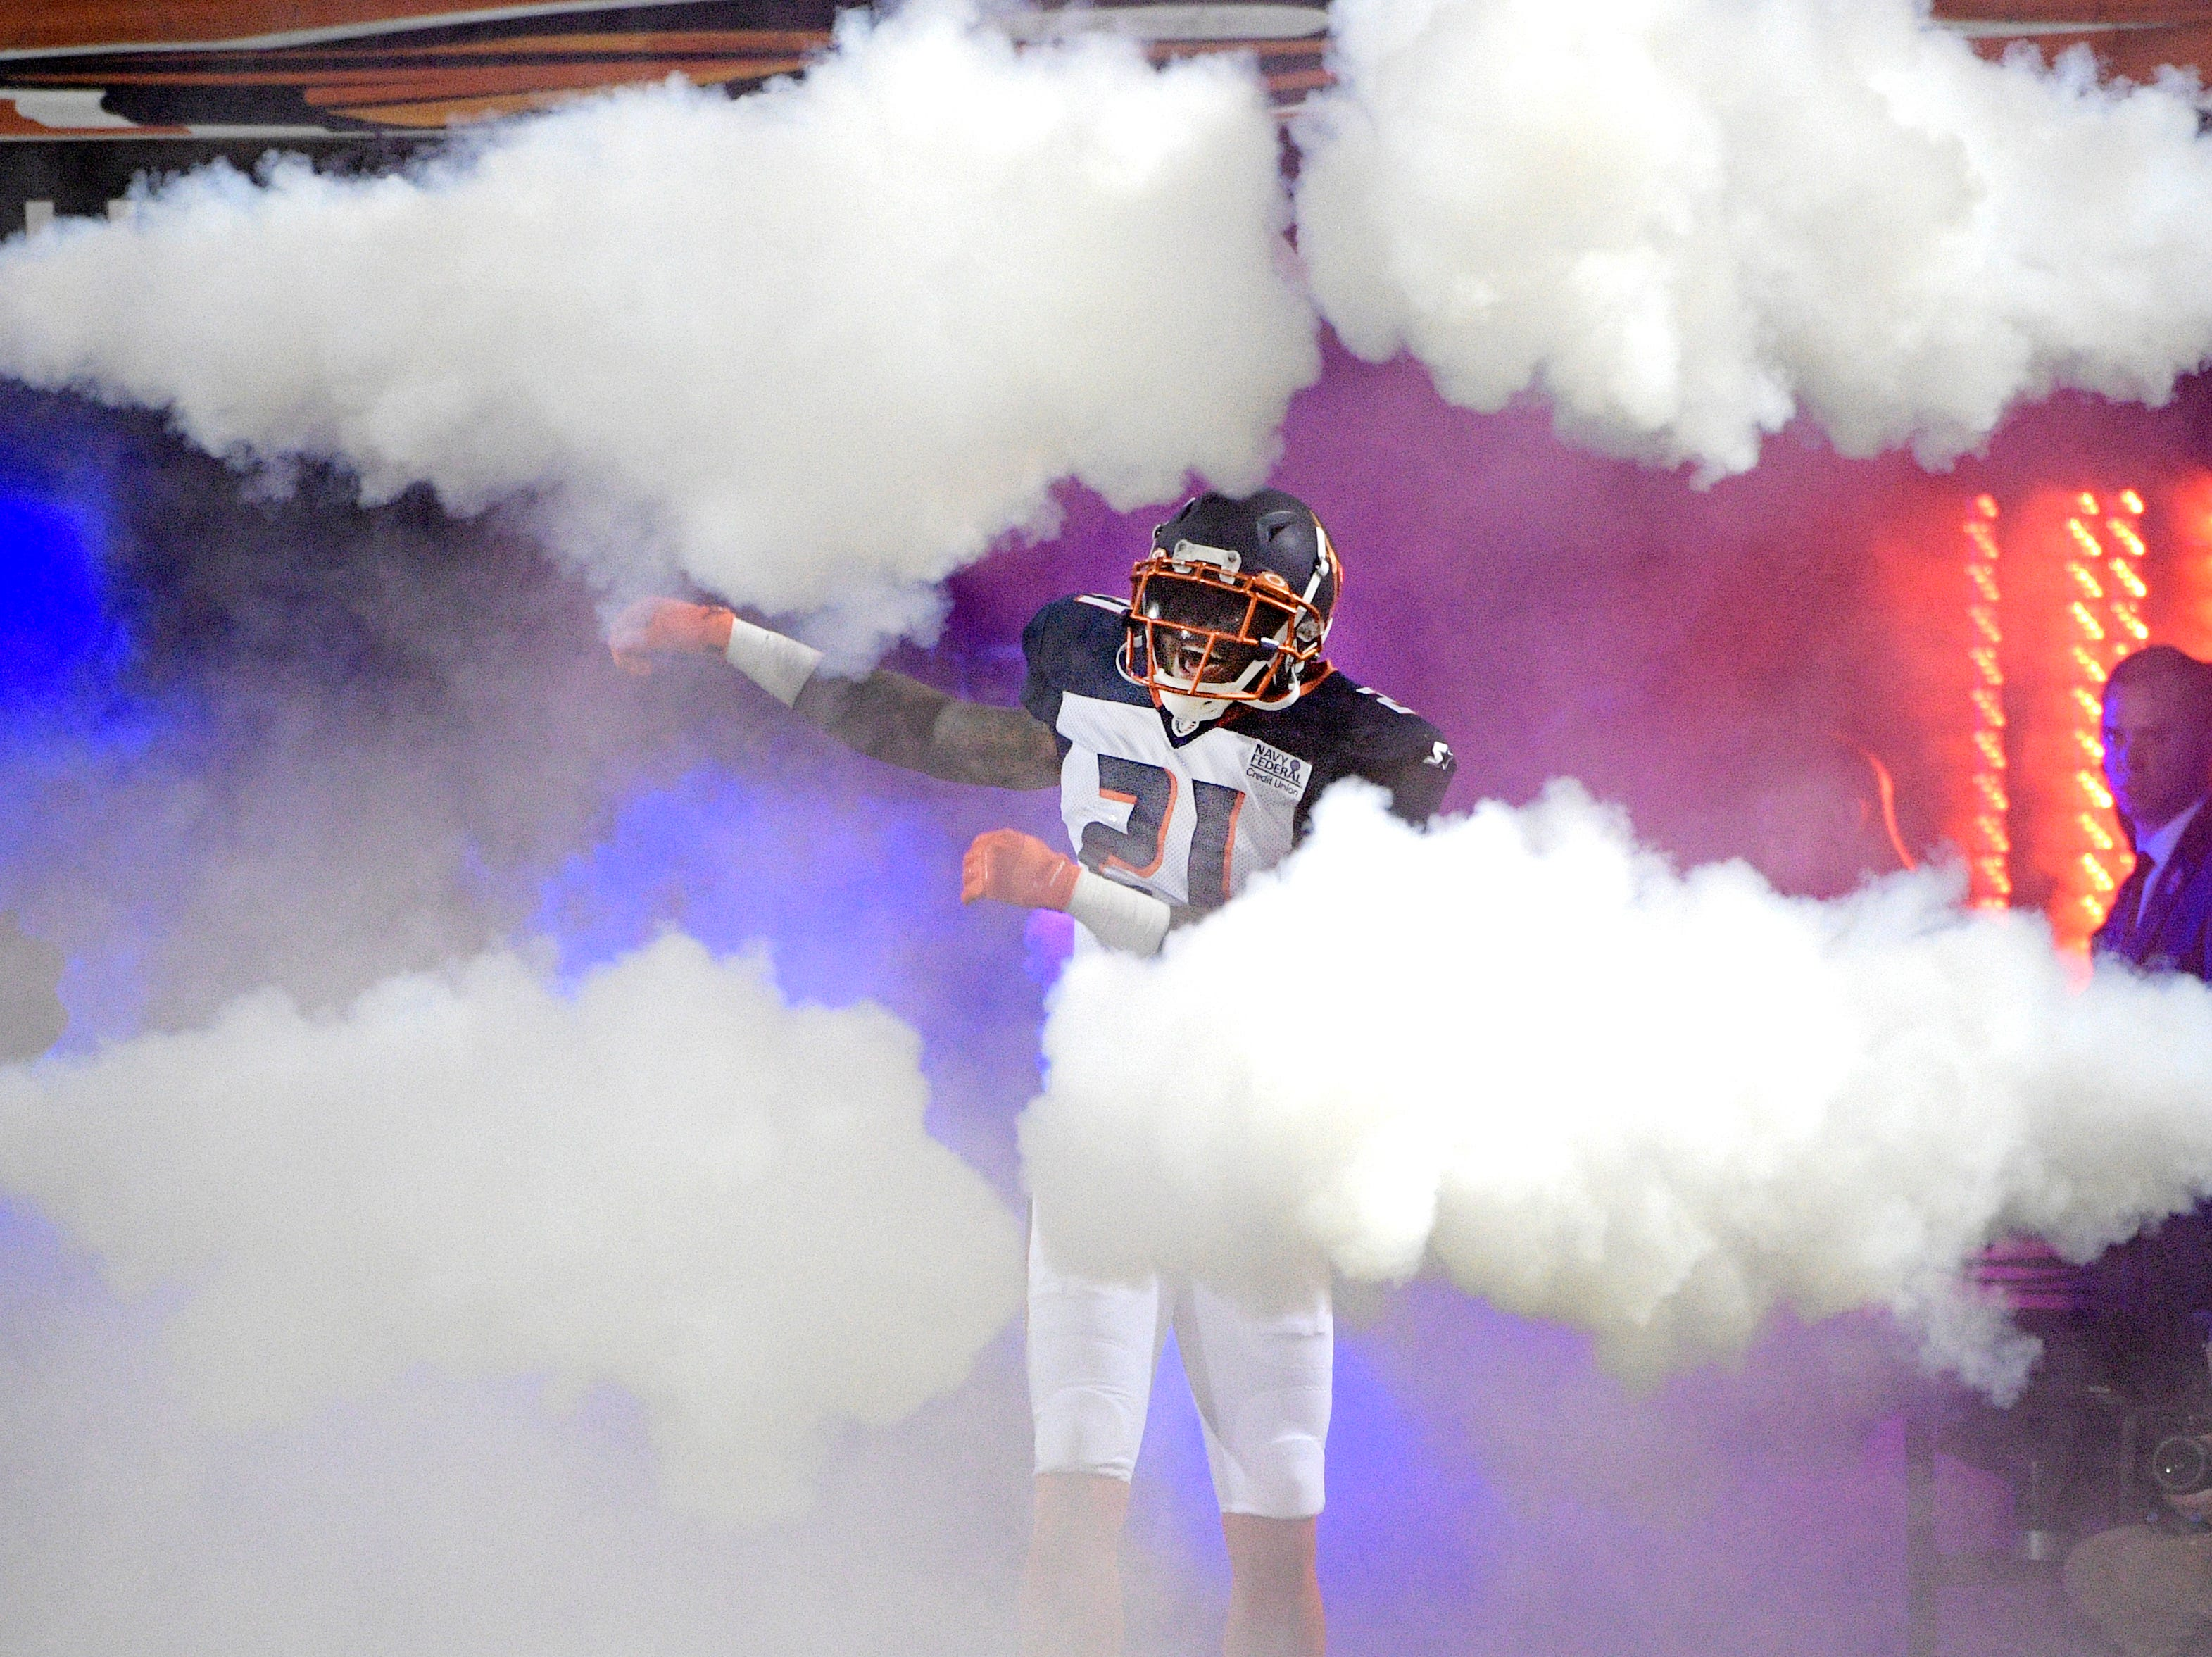 Orlando Apollos safety Jerome Couplin III runs onto the field during player introductions before the team's Alliance of American Football game against the Atlanta Legends on Saturday, Feb. 9, 2019, in Orlando, Fla. (AP Photo/Phelan M. Ebenhack)